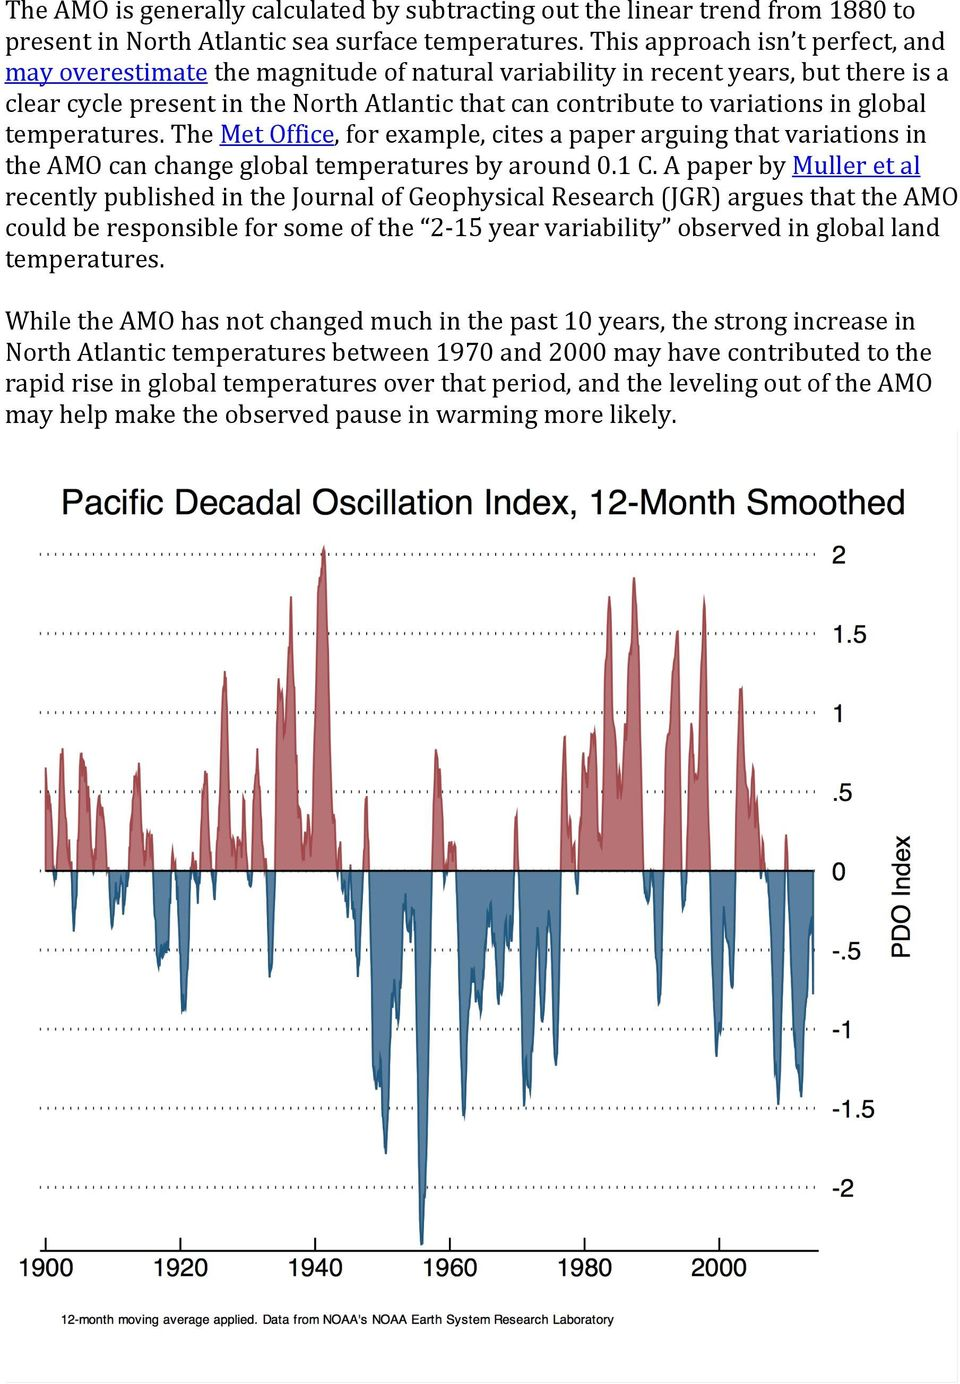 global temperatures. The Met Office, for example, cites a paper arguing that variations in the AMO can change global temperatures by around 0.1 C.